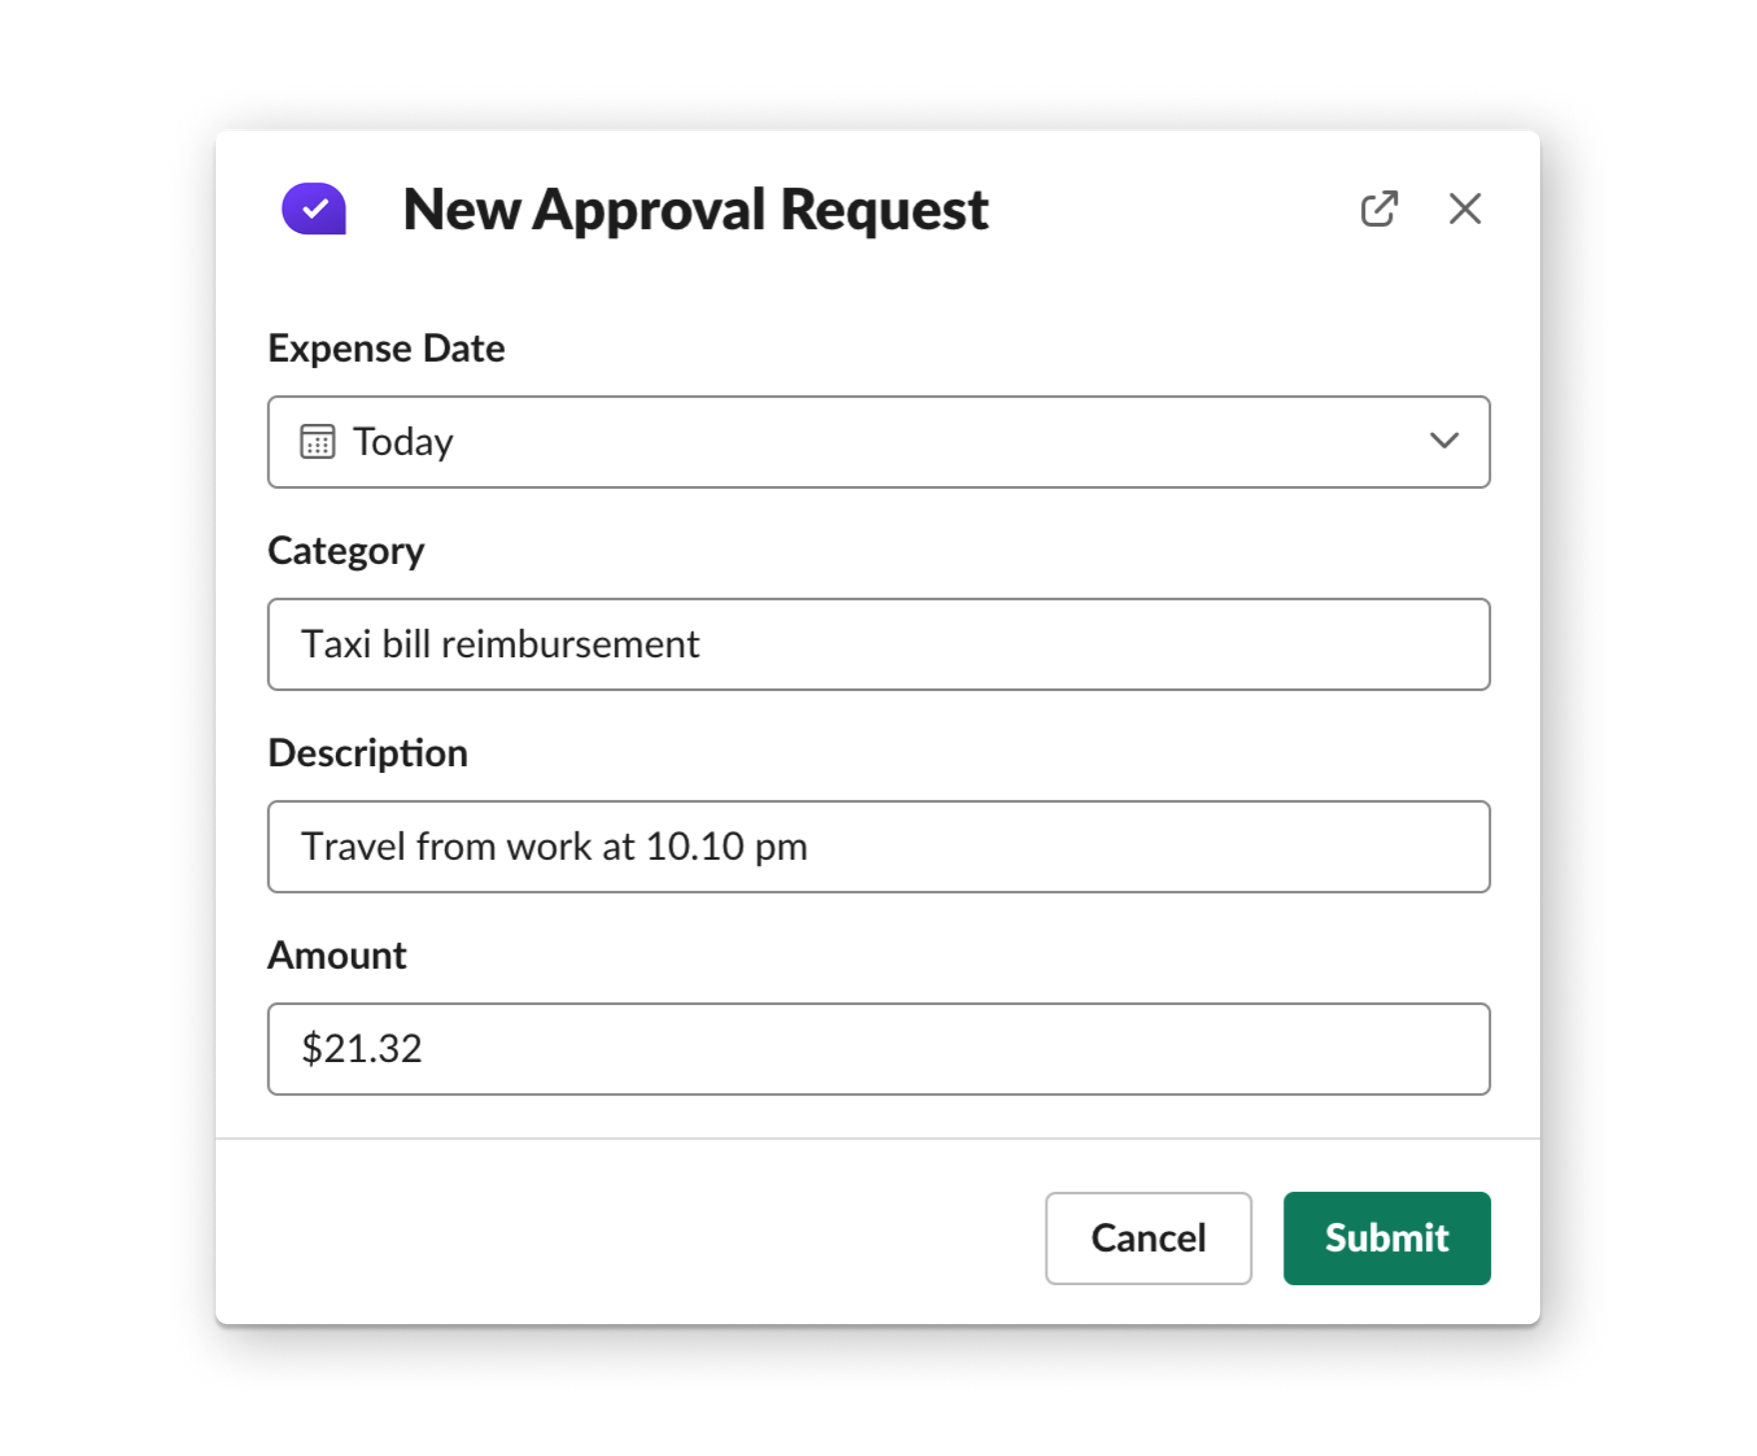 New expense approval